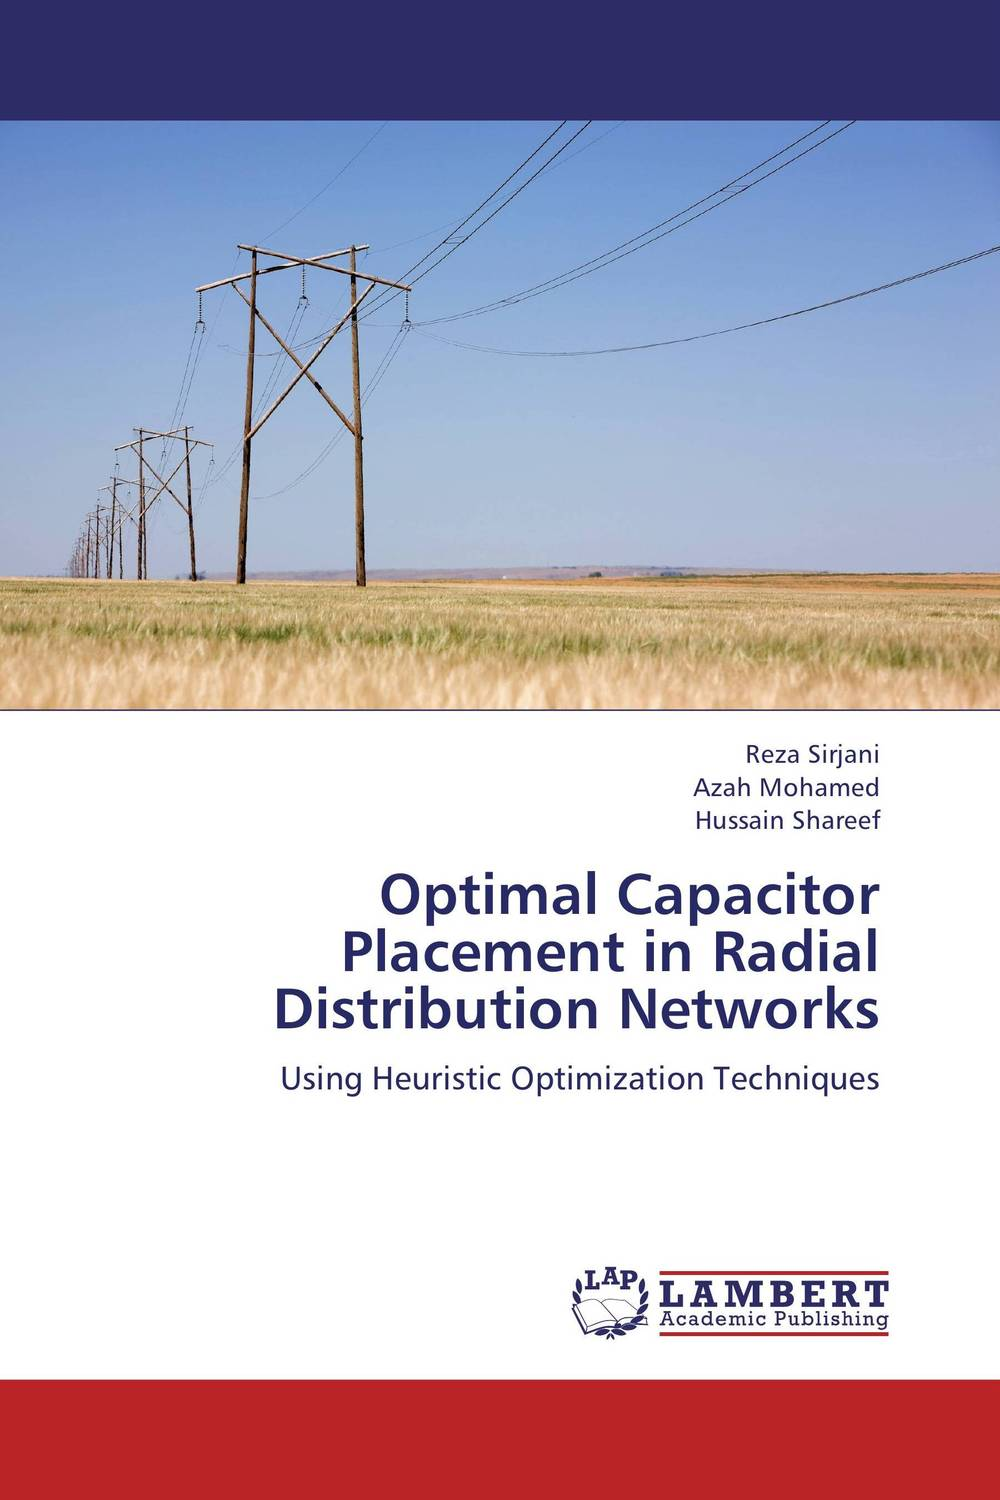 все цены на Optimal Capacitor Placement in Radial Distribution Networks онлайн